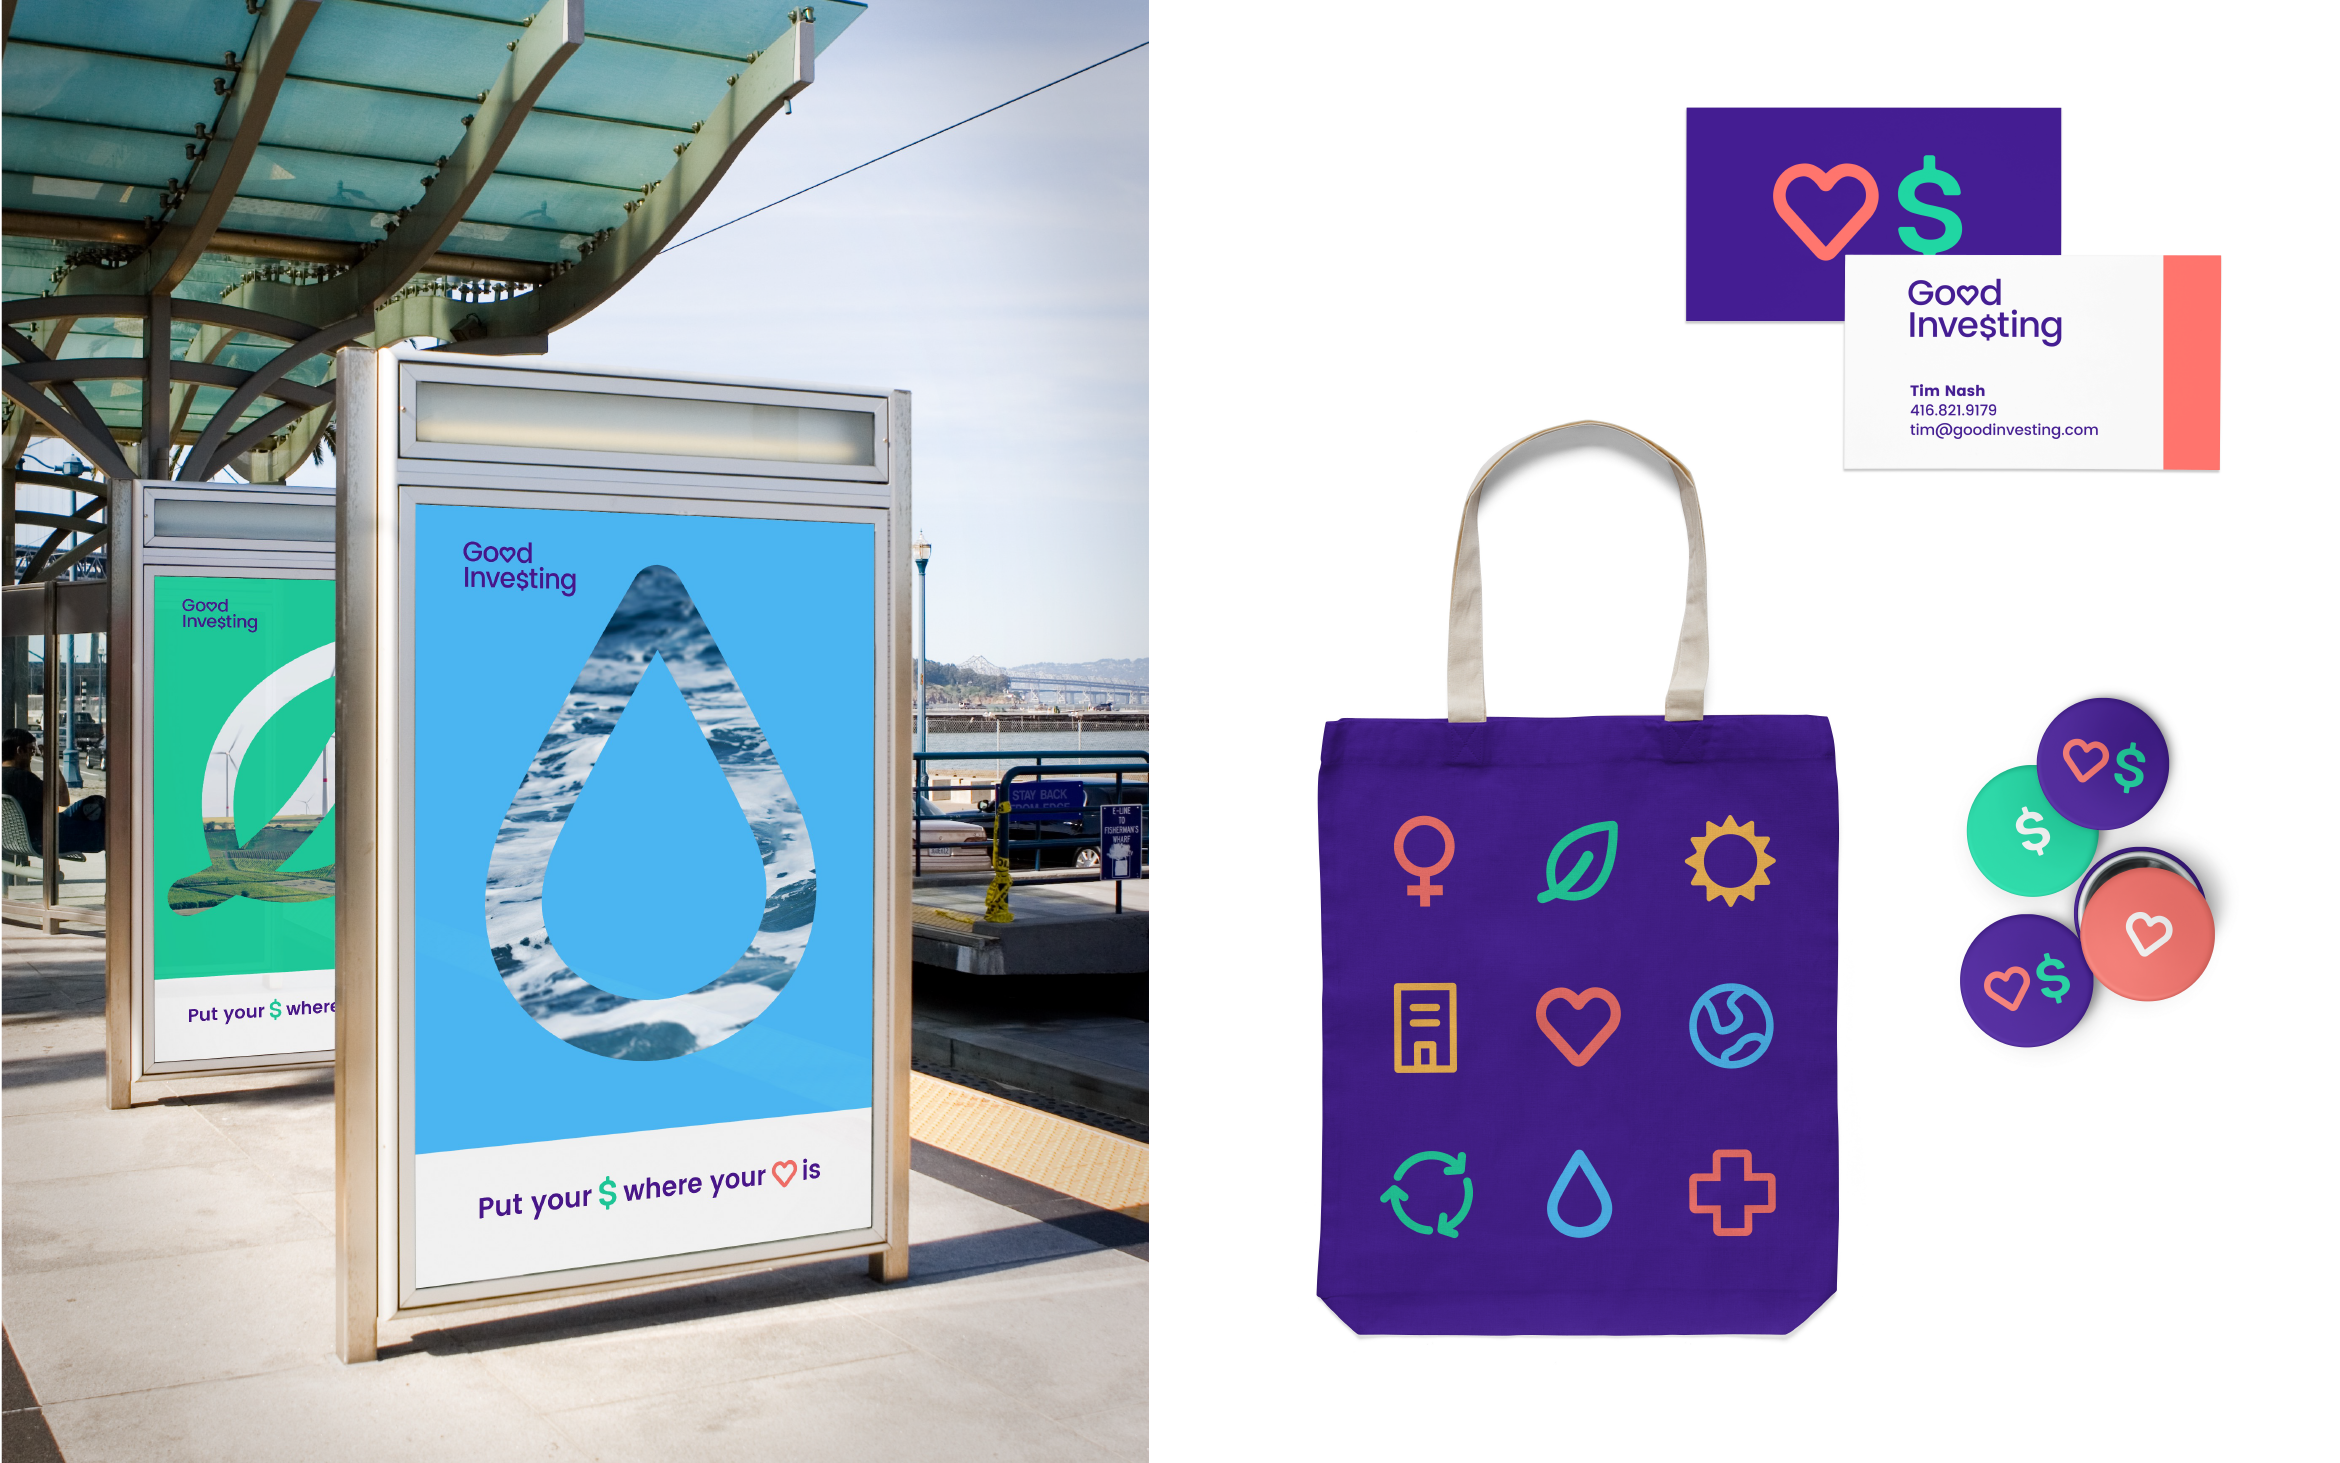 Mockups of the Good Investing brand on a bus shelter, business card, tote bag, and buttons.